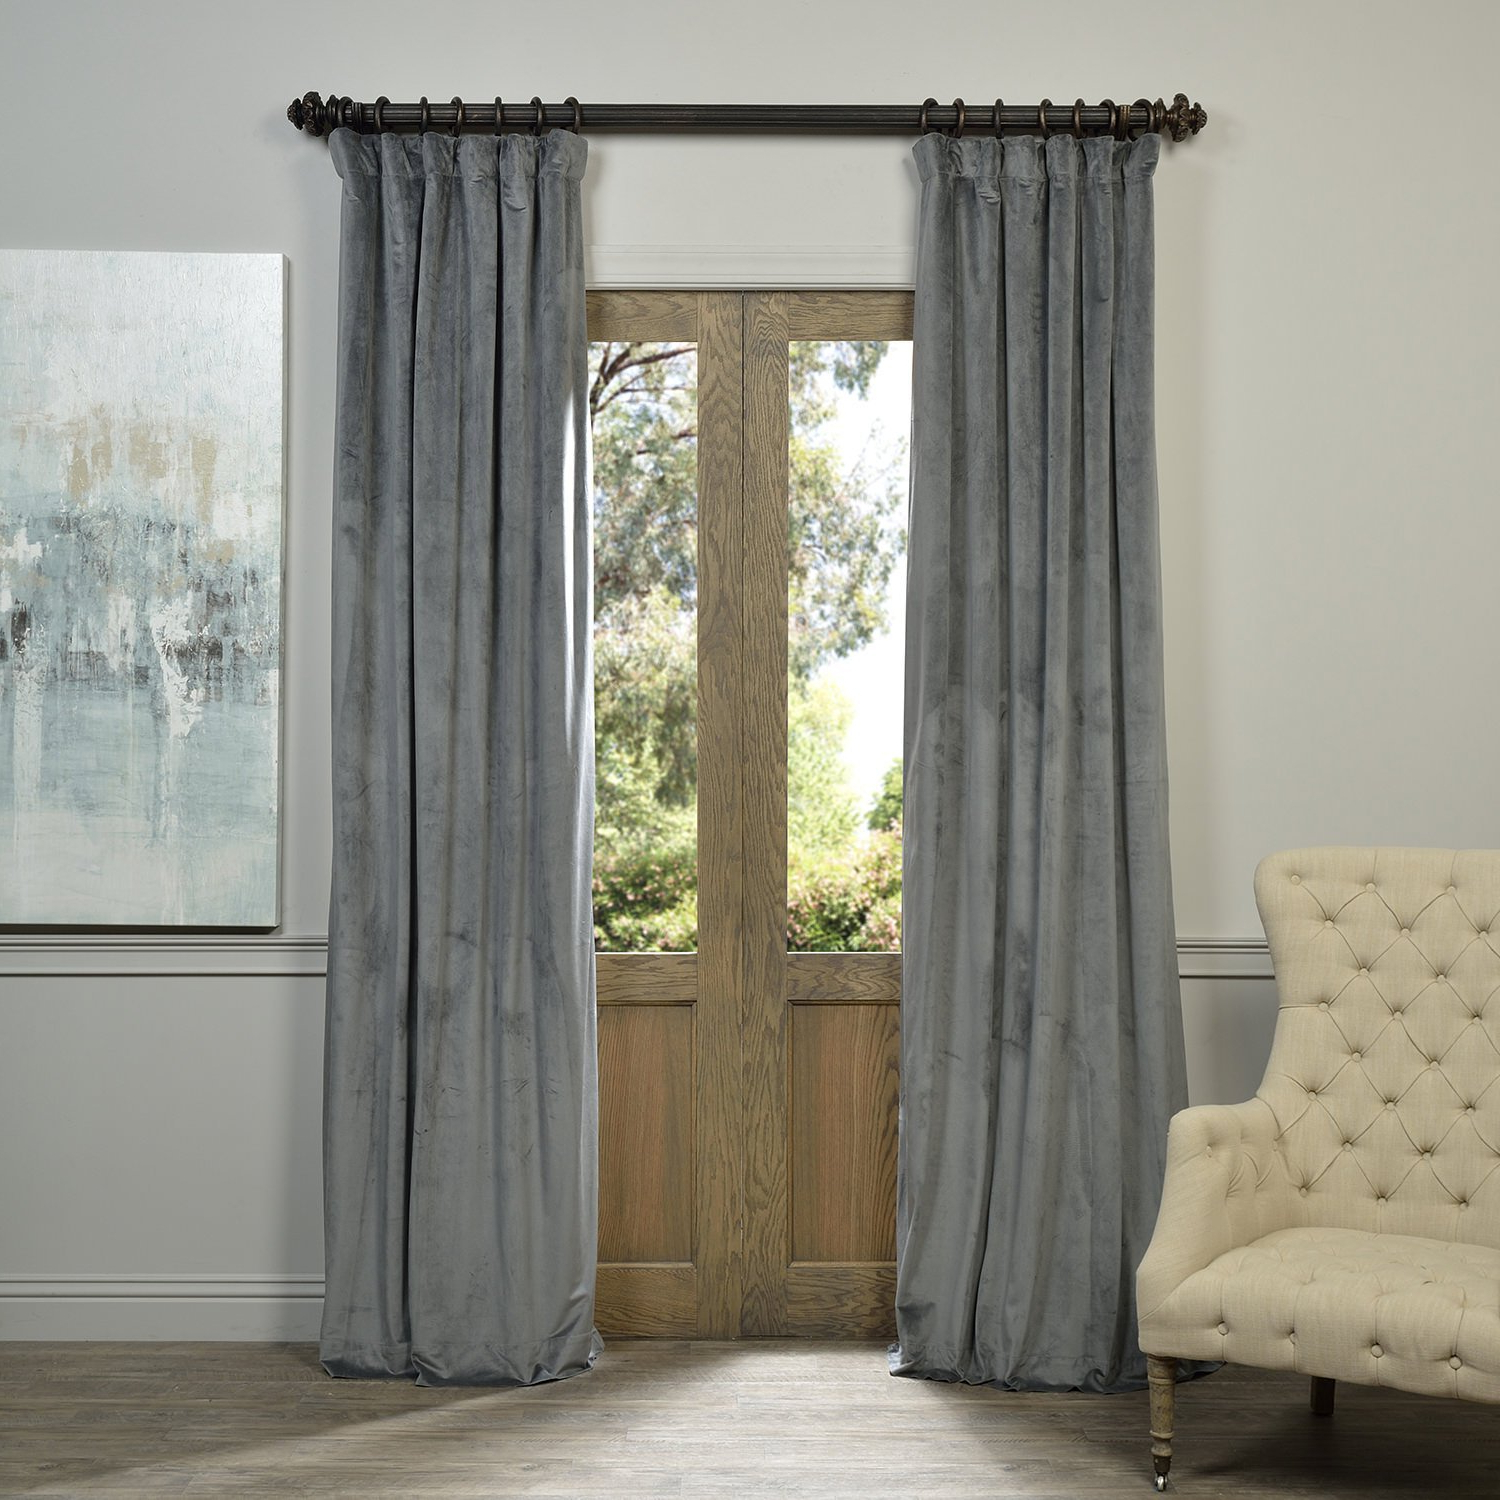 Well Known Signature Blackout Velvet Curtains Inside Half Price Drapes Vpch 184005 84 Signature Blackout Velvet Curtain, Natural  Grey, 50 X  (View 18 of 20)